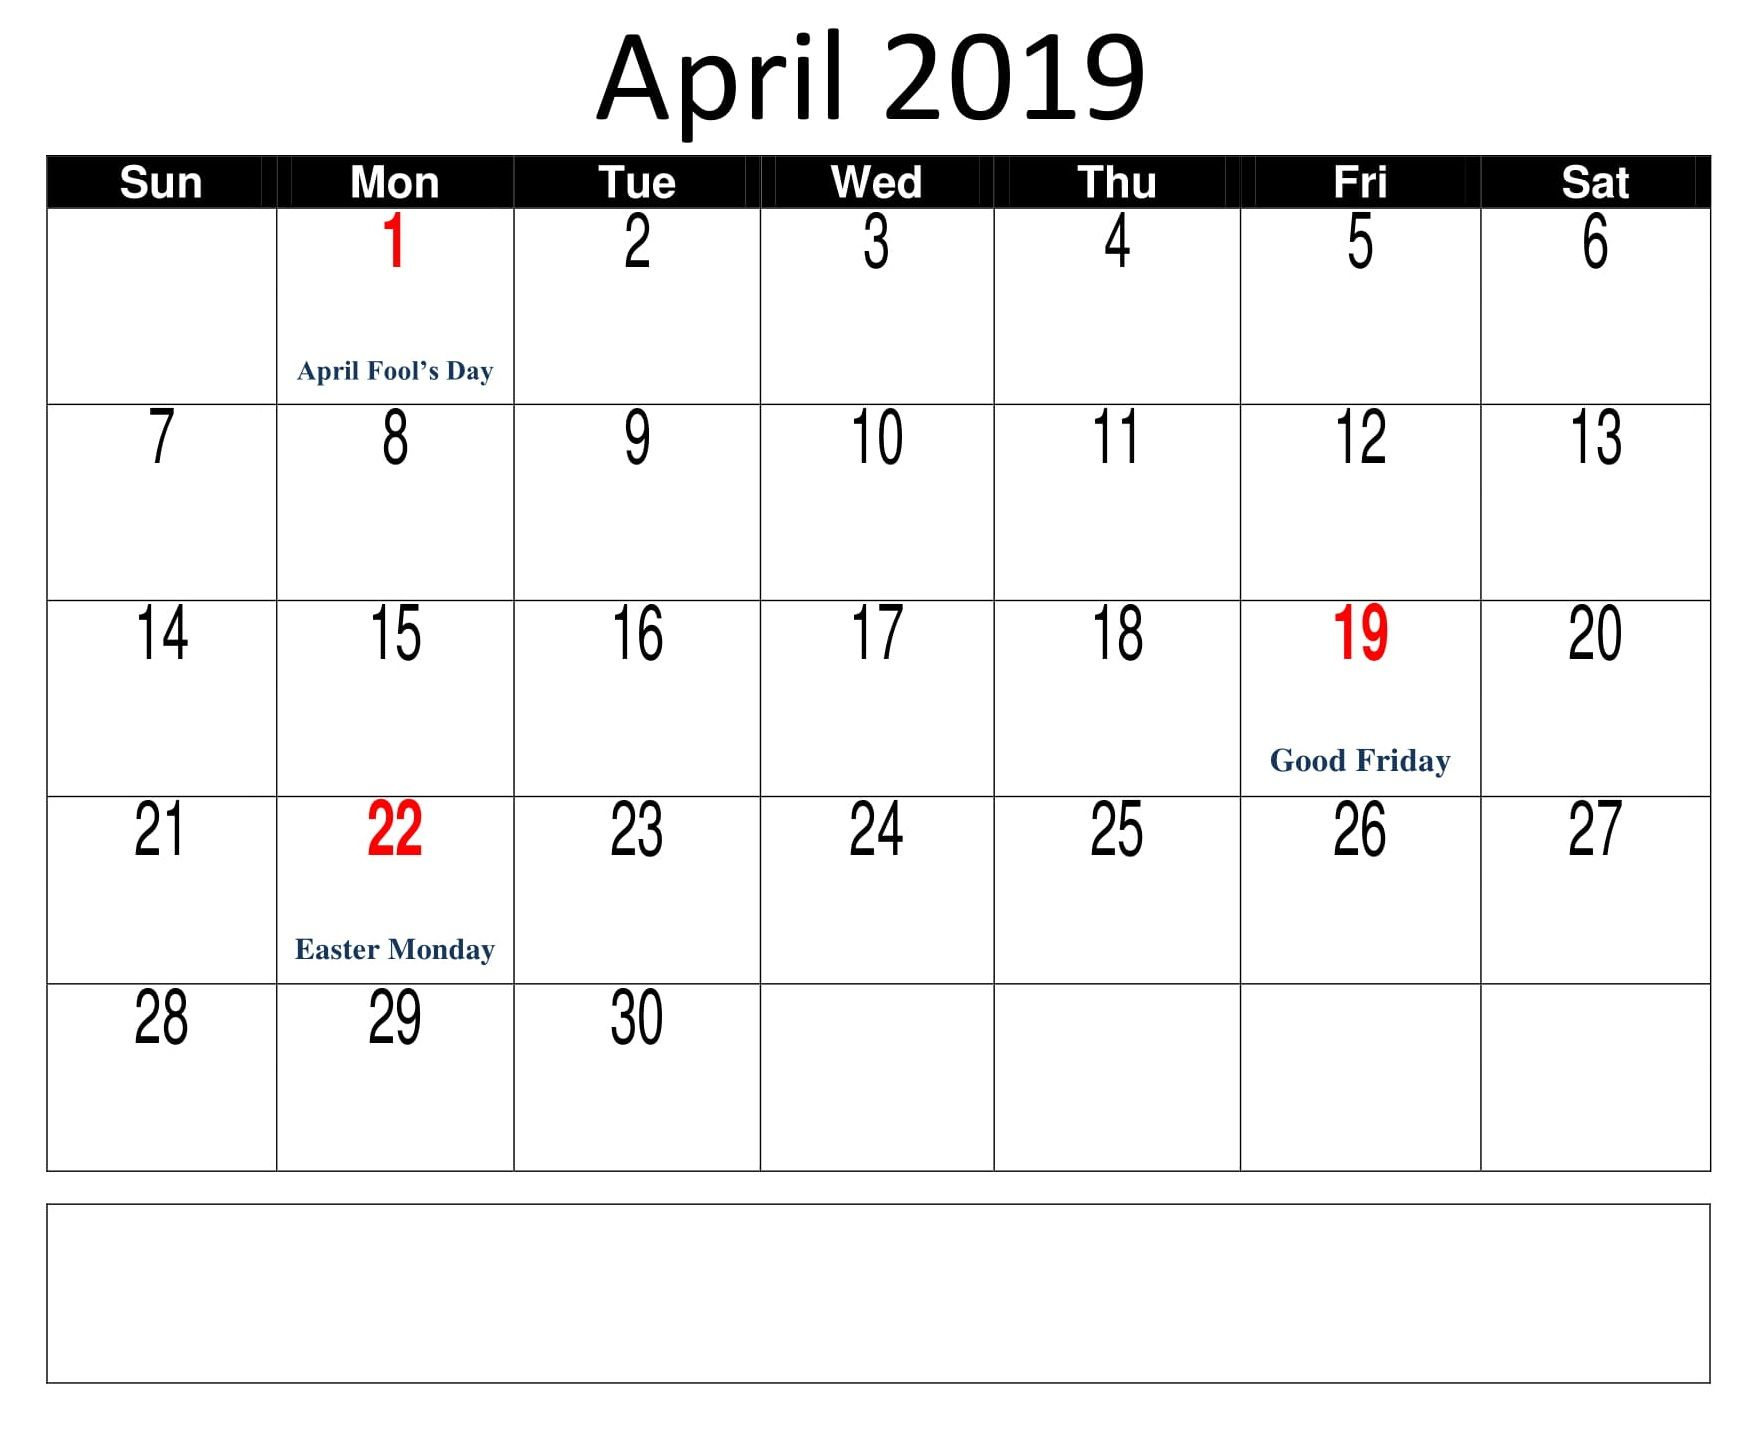 April Calendar With Federal Holidays 2019 Holiday Calendar 2019 Calendar Calendar 2019 Holidays